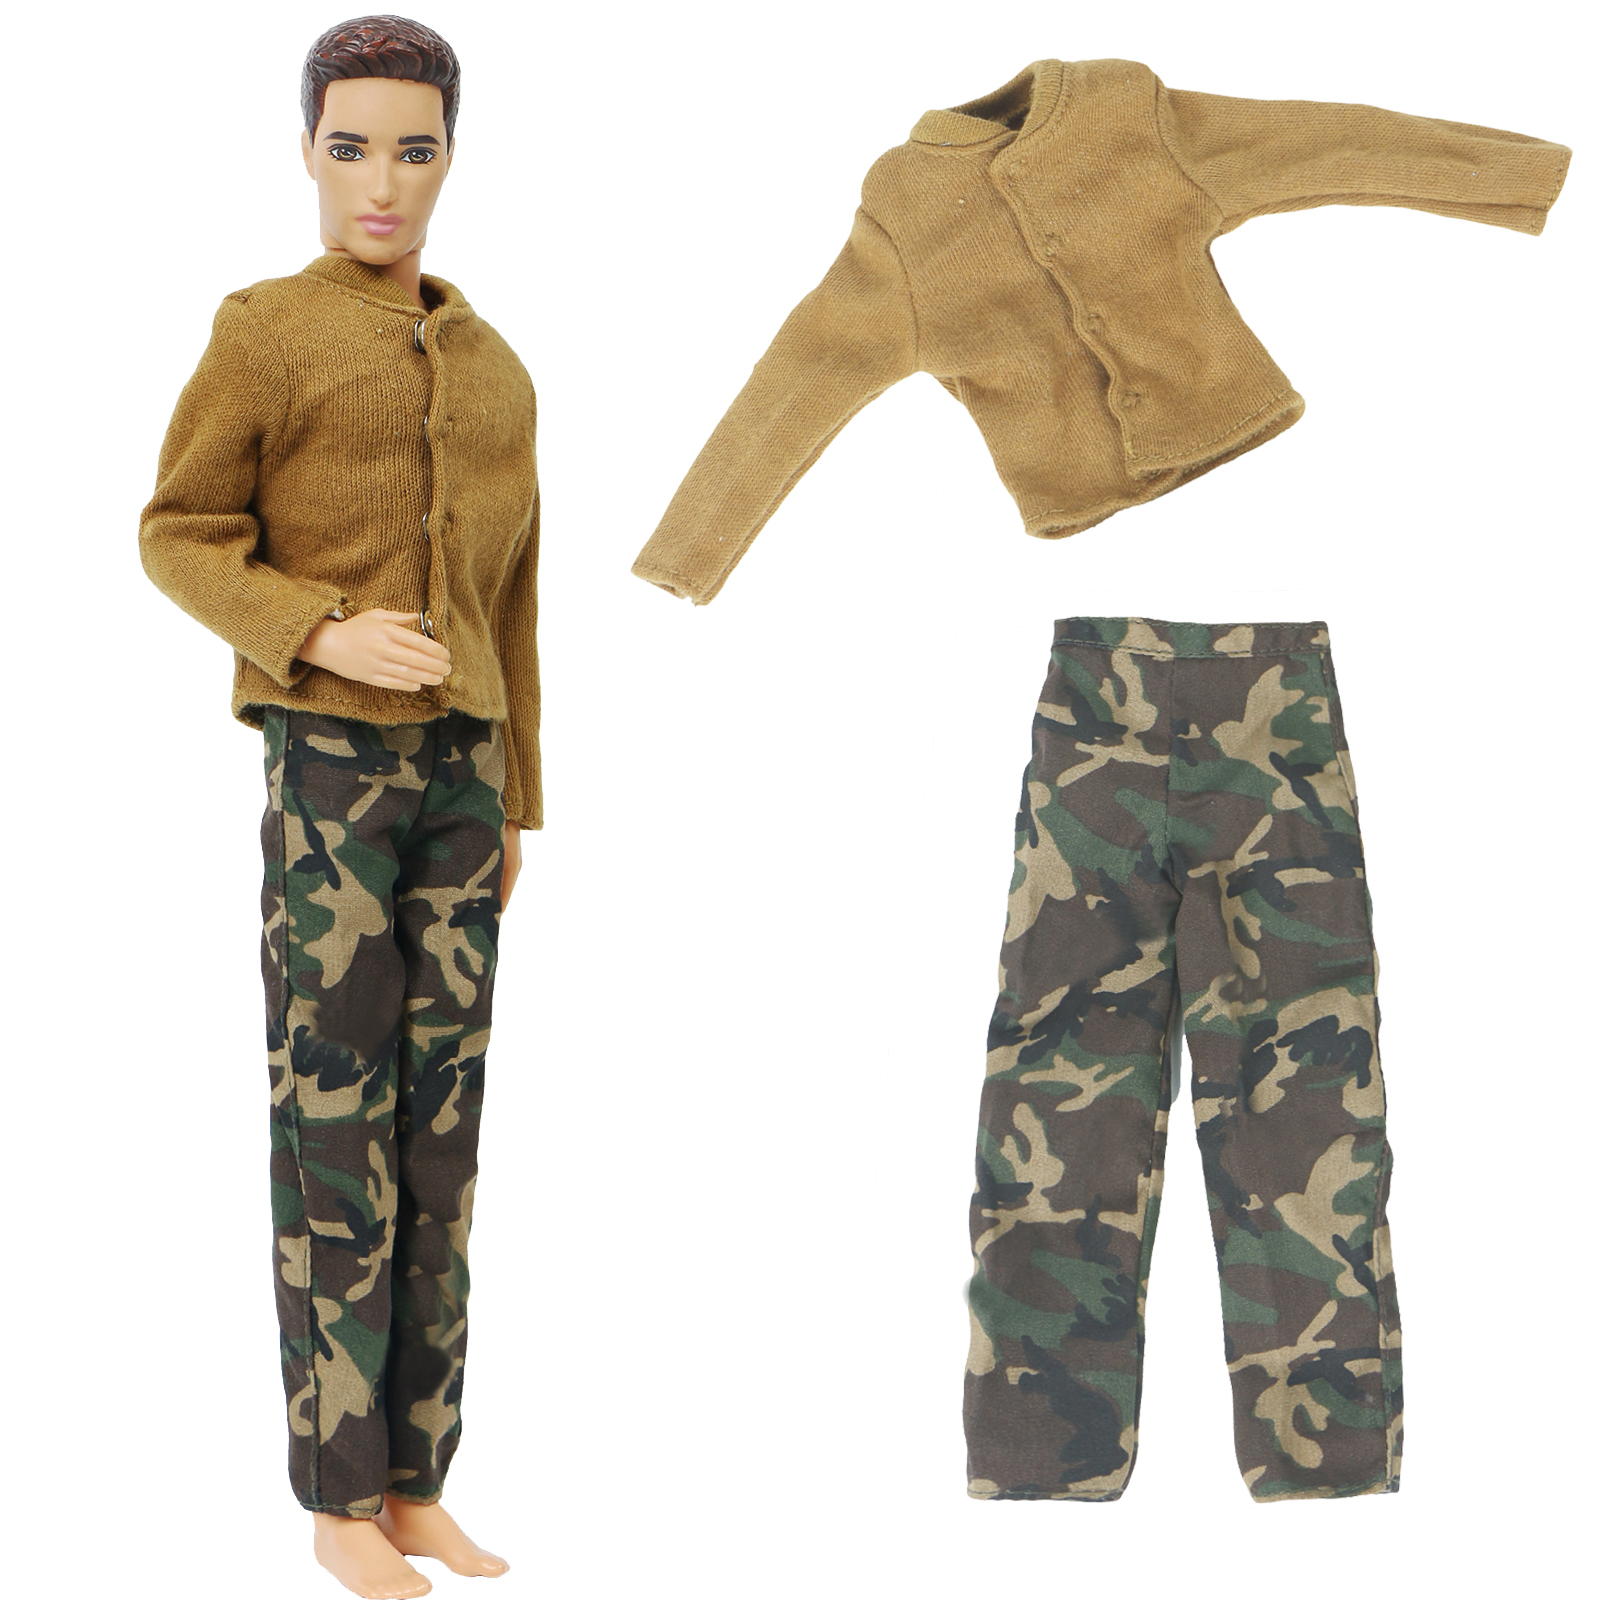 High Quality Men's Doll Outfit For Barbie Doll Friend Ken Doll Camouflage Pants Trousers Yellow Shirt Clothes Accessories Toy